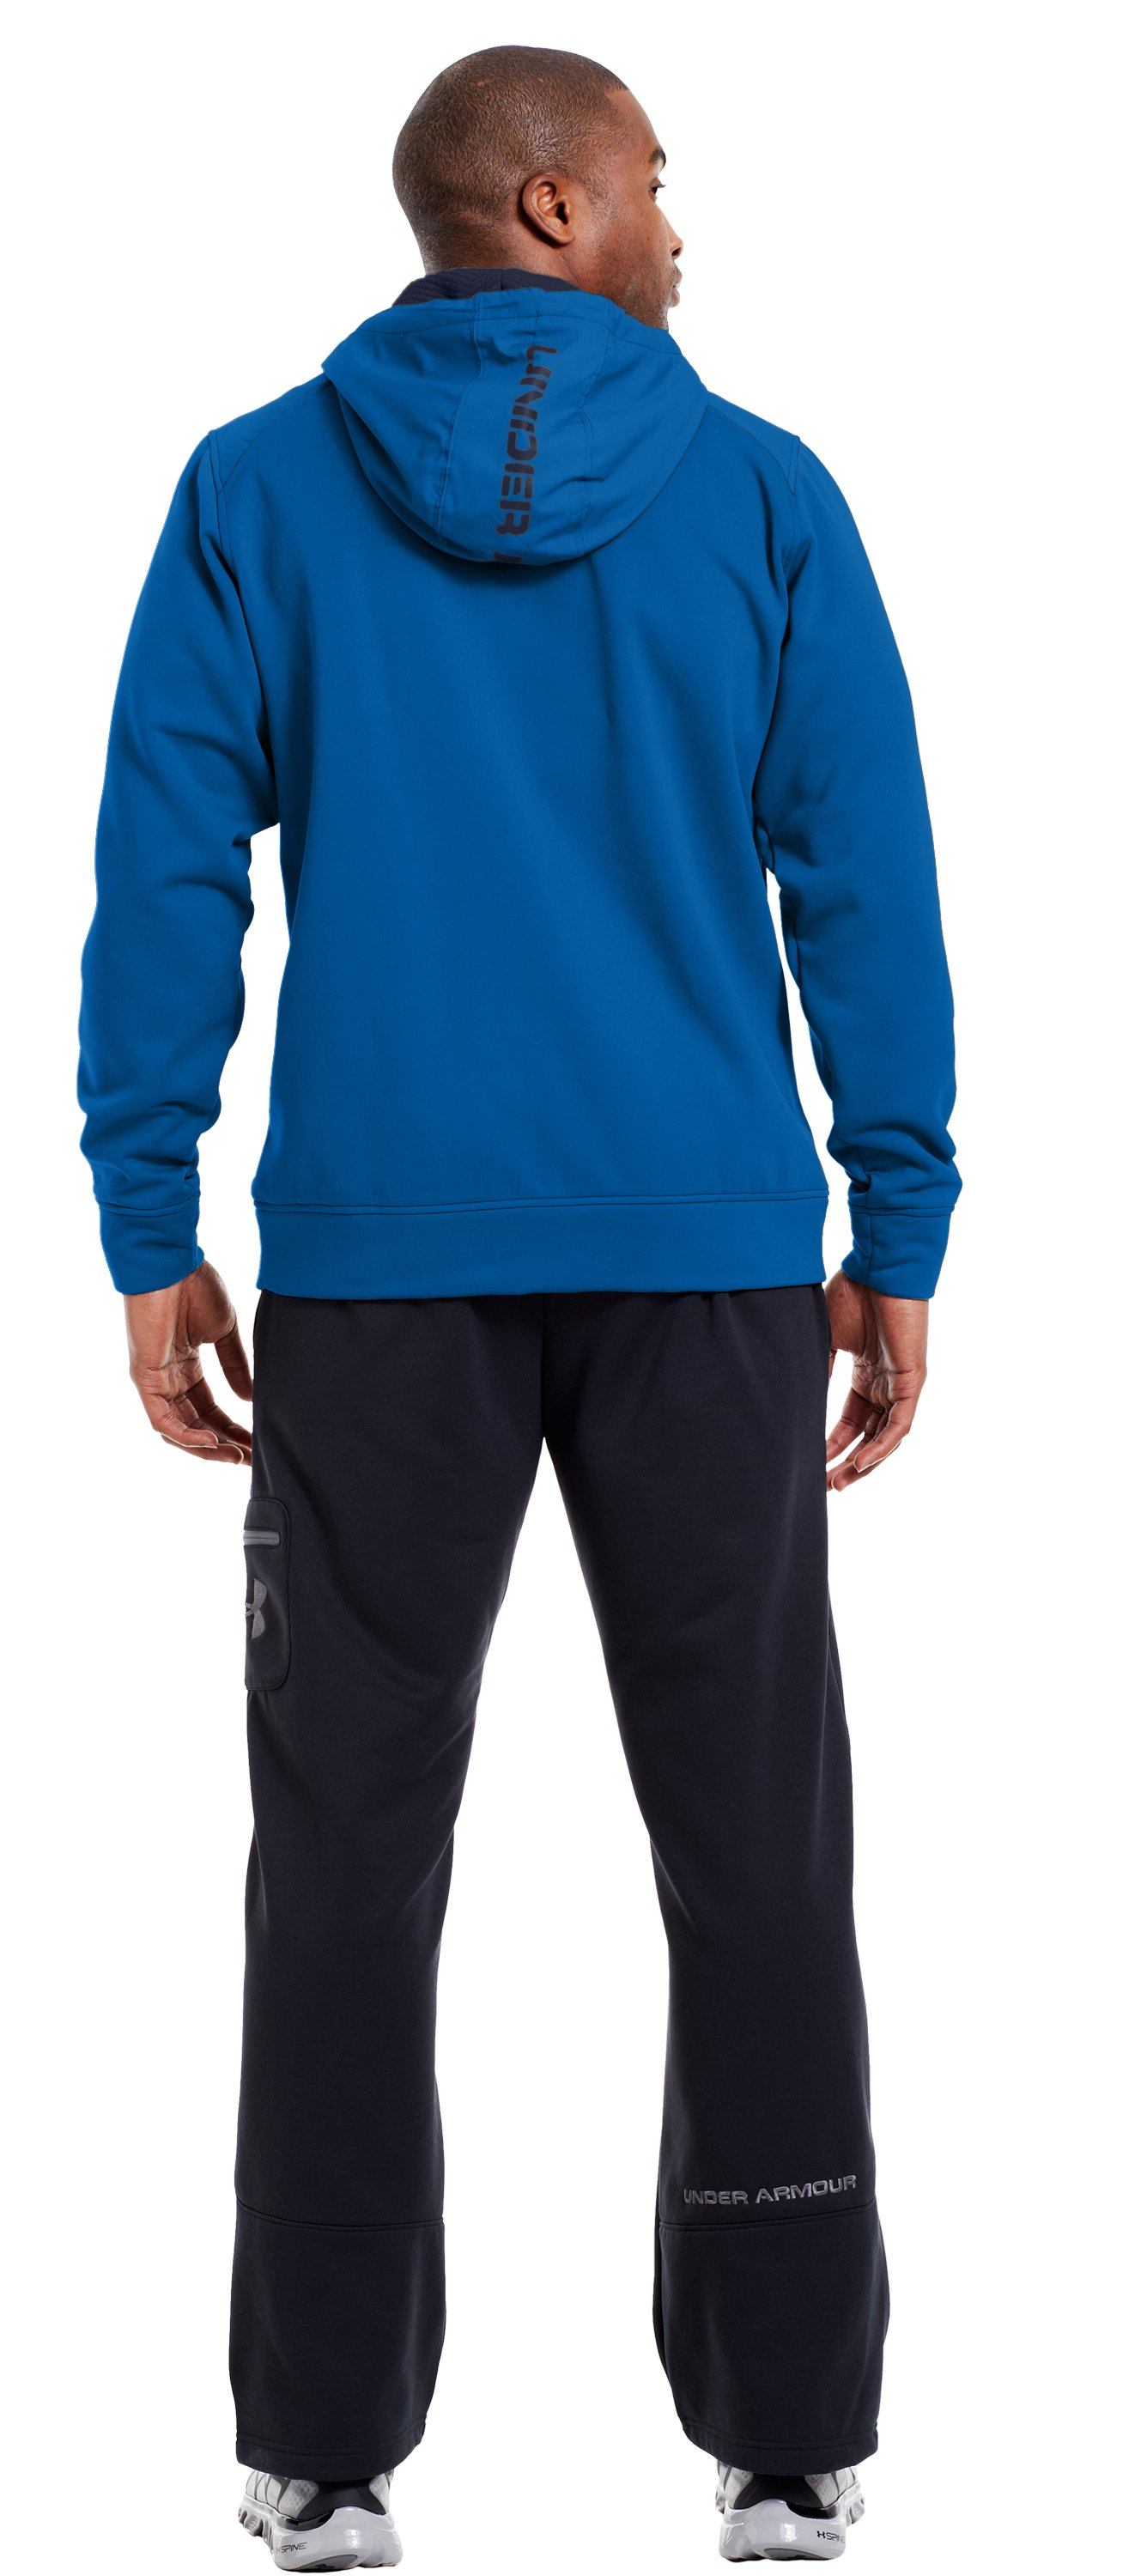 Men's ColdGear® Infrared Armour® Fleece Storm ¼ Zip Hoodie, SUPERIOR BLUE, Back